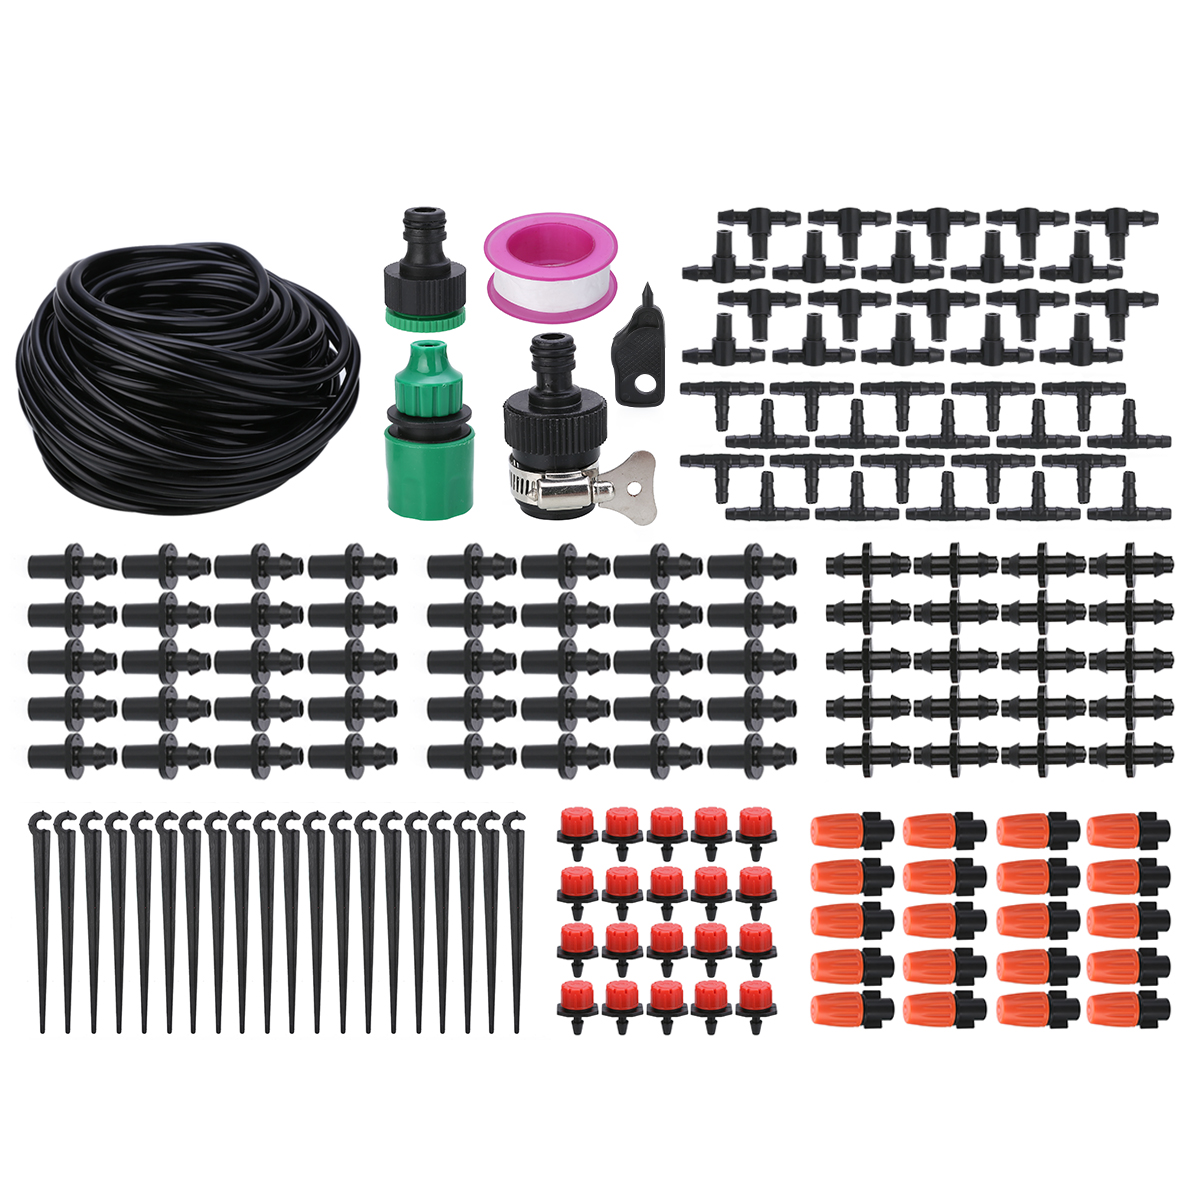 Mayitr 15m Automatic Watering Irrigation DIY Drip System Kit Outdoor Garden Dripper Irrigation Watering Kits